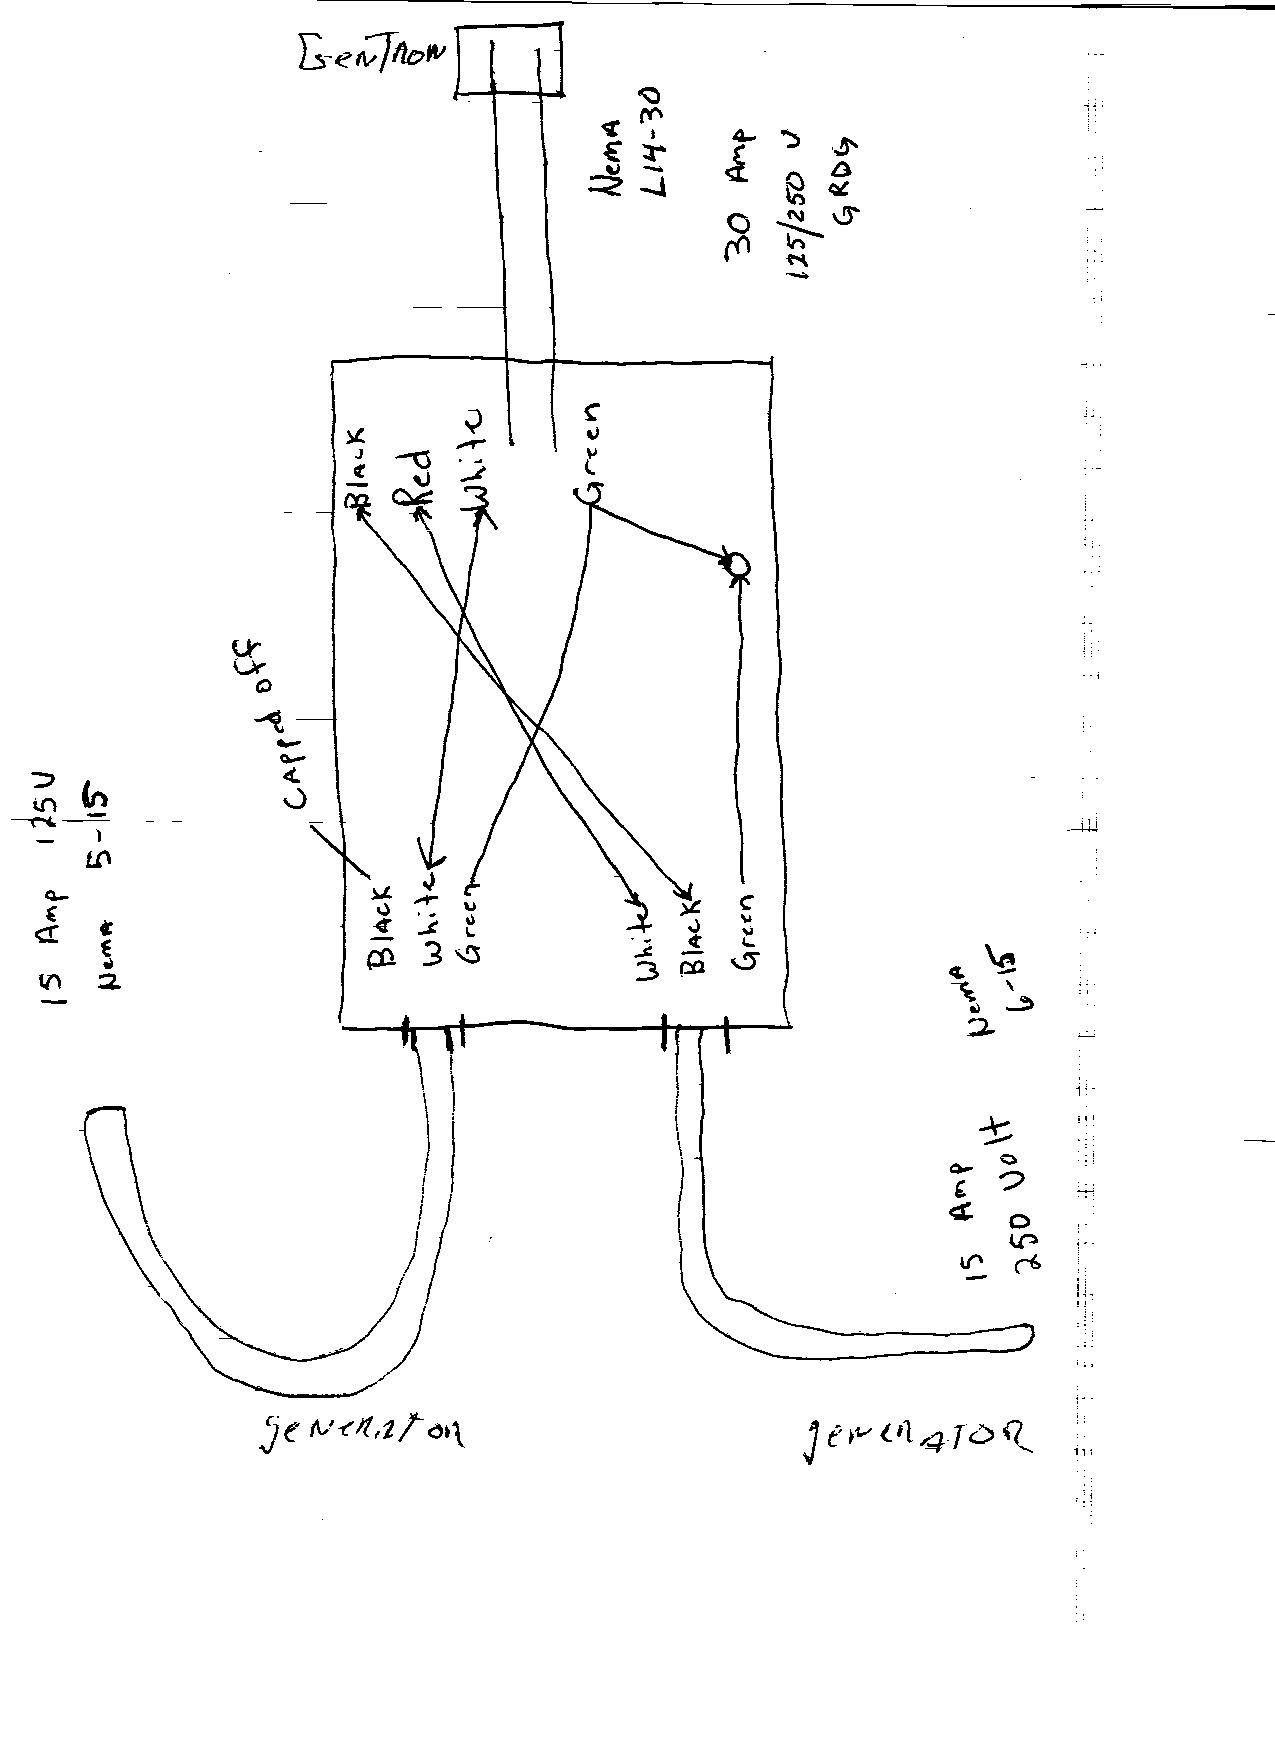 Generator Backfeed Wiring Diagram